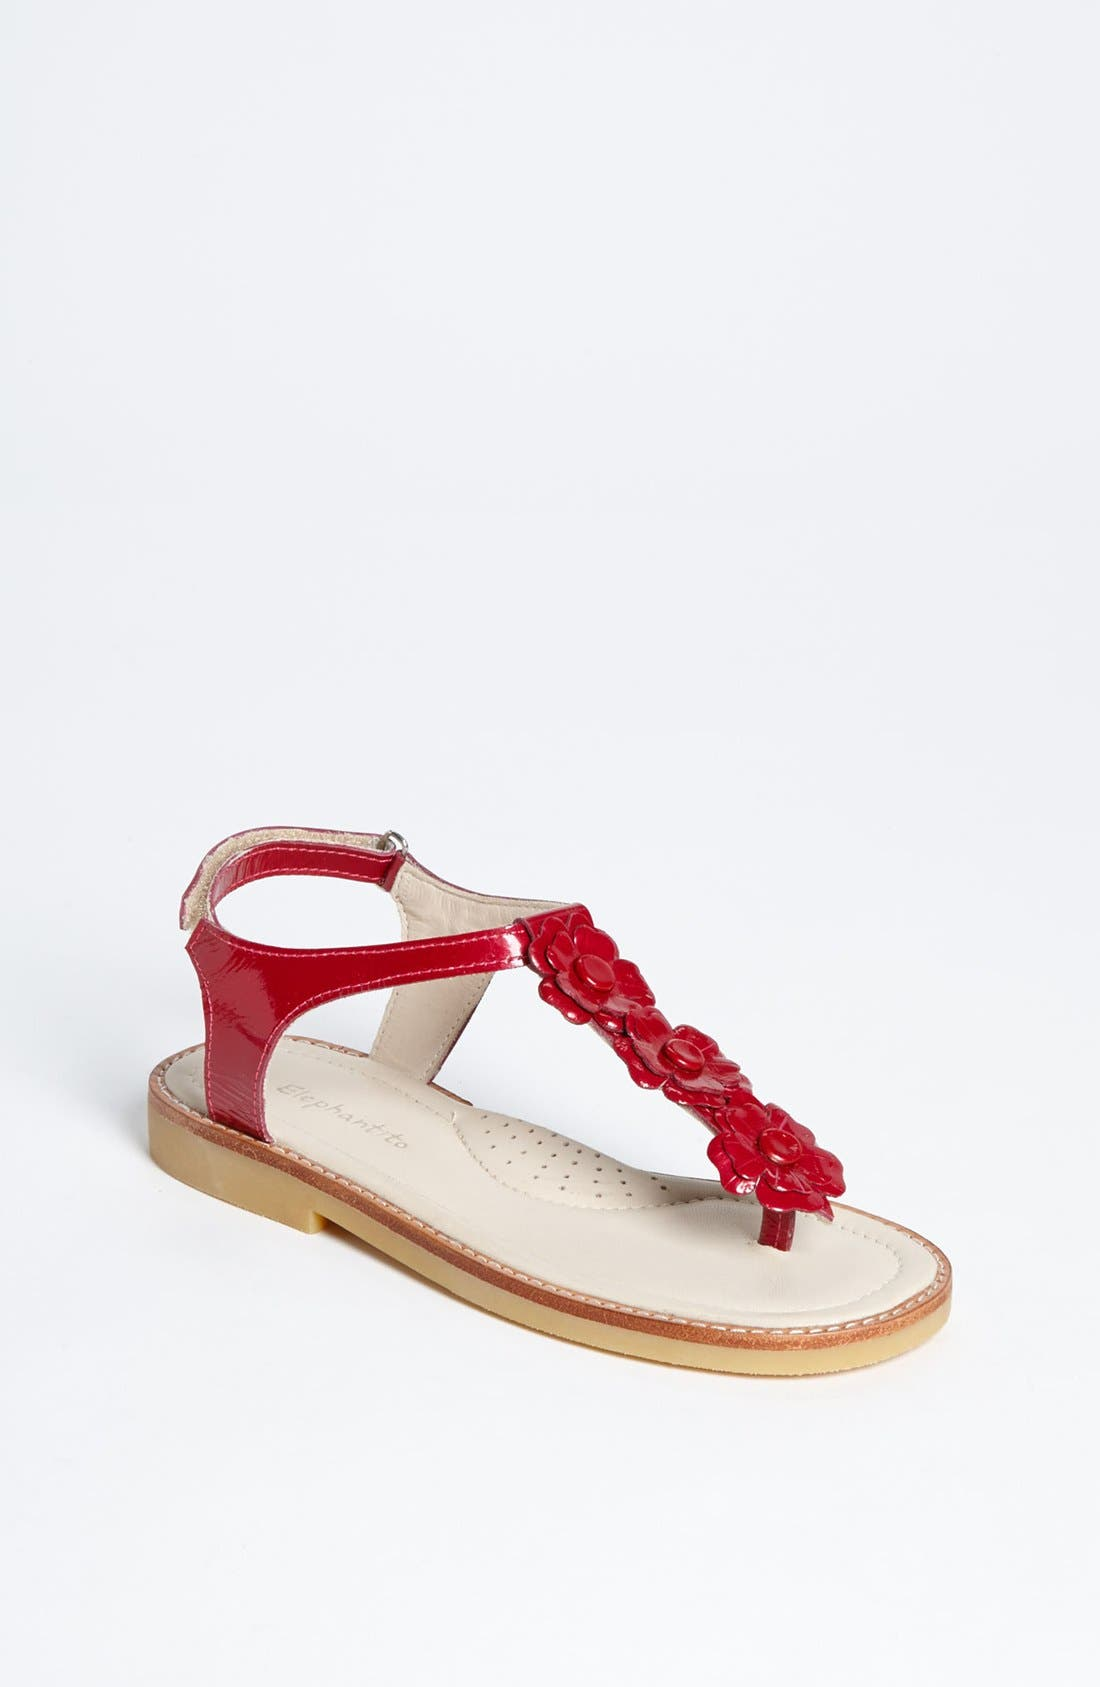 Alternate Image 1 Selected - Elephantito 'Bella' Sandal (Toddler & Little Kid)